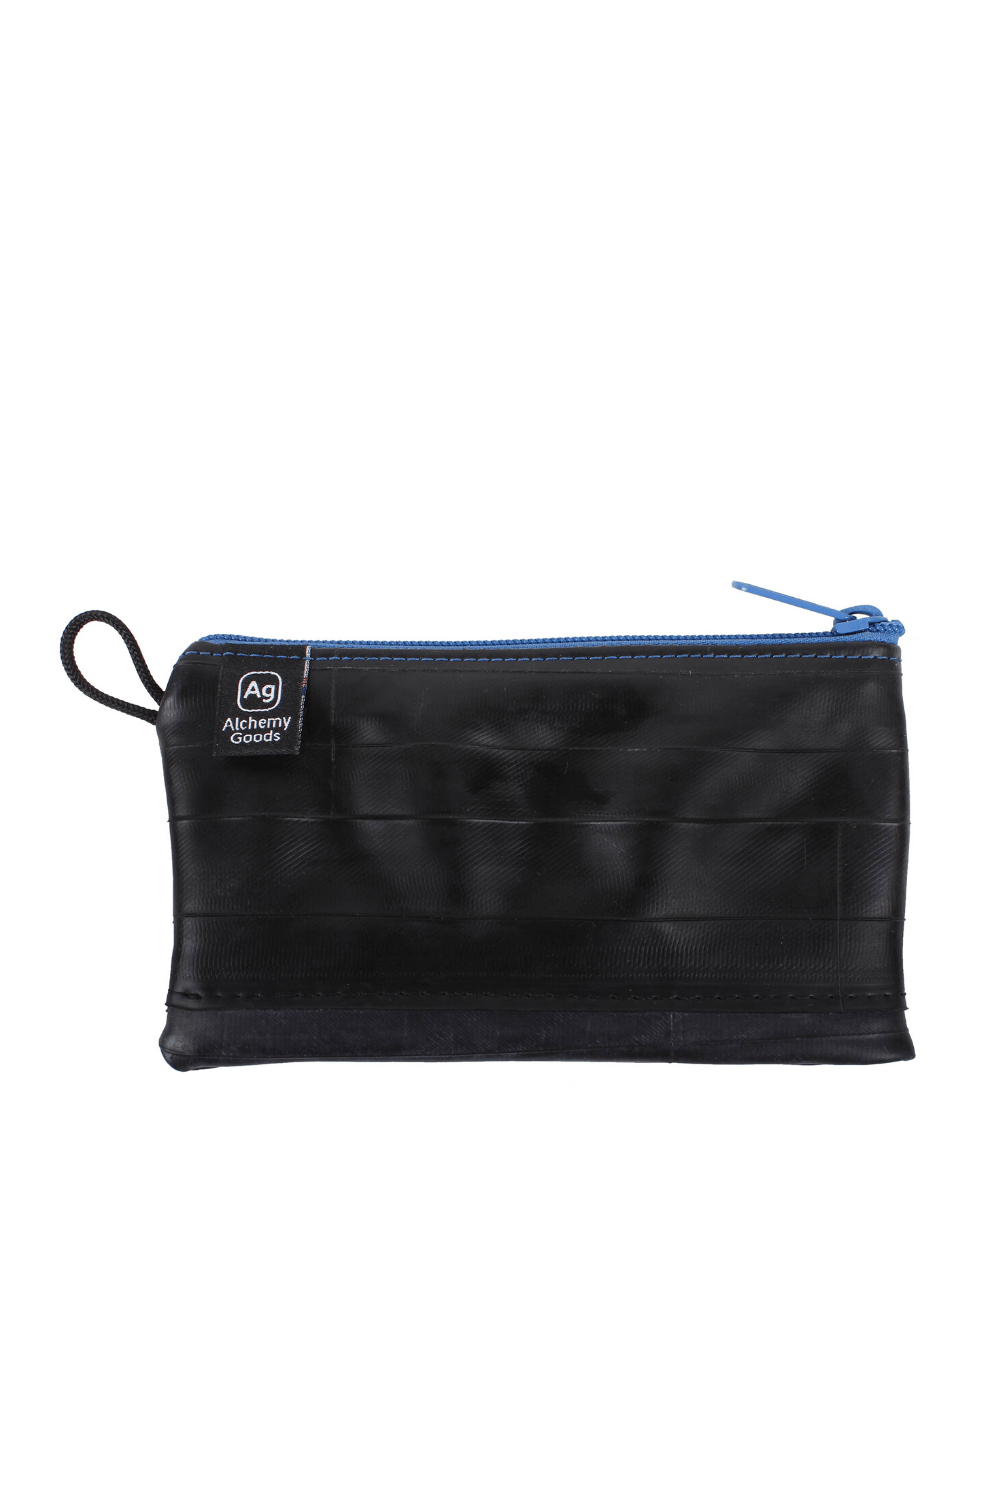 Alchemy Goods Men's Travel Kits Electric Blue Zipper Pouch • Medium